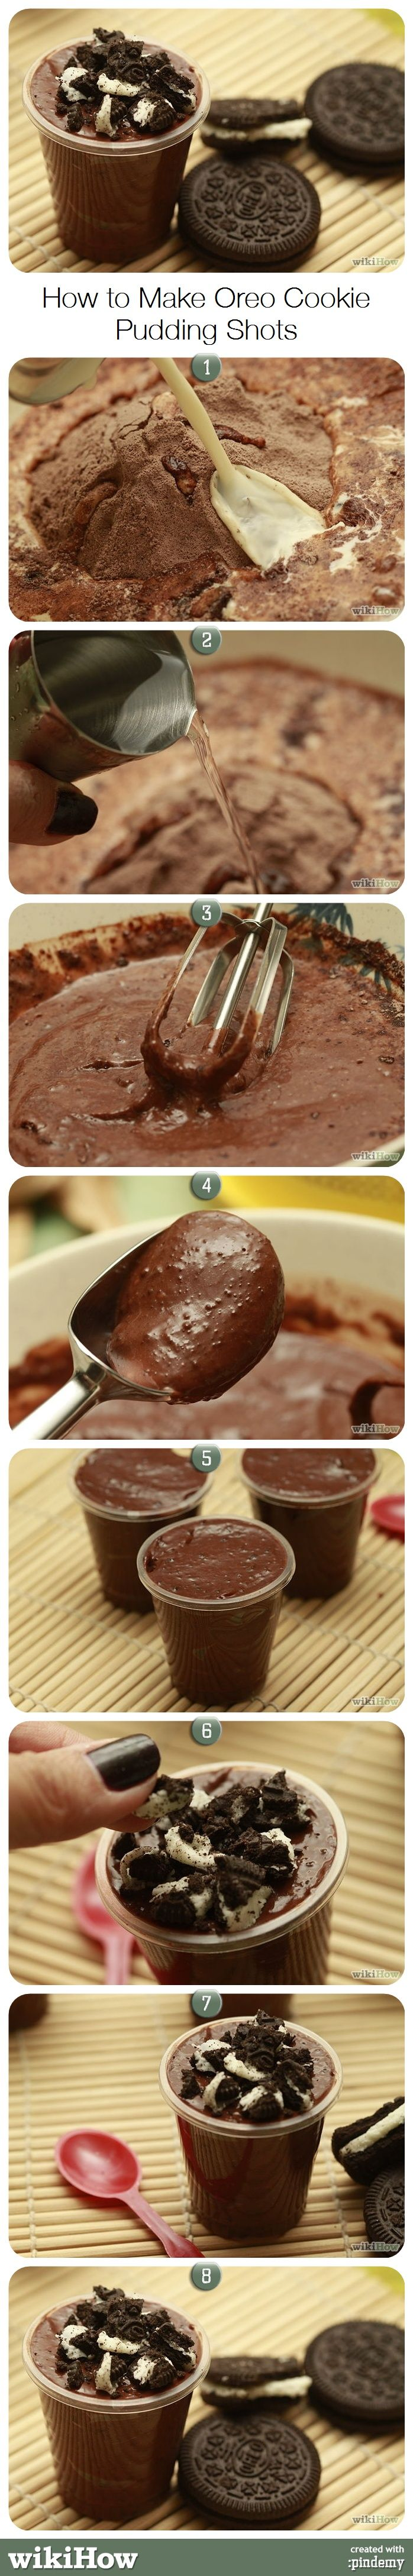 How to Make Oreo Cookie Pudding